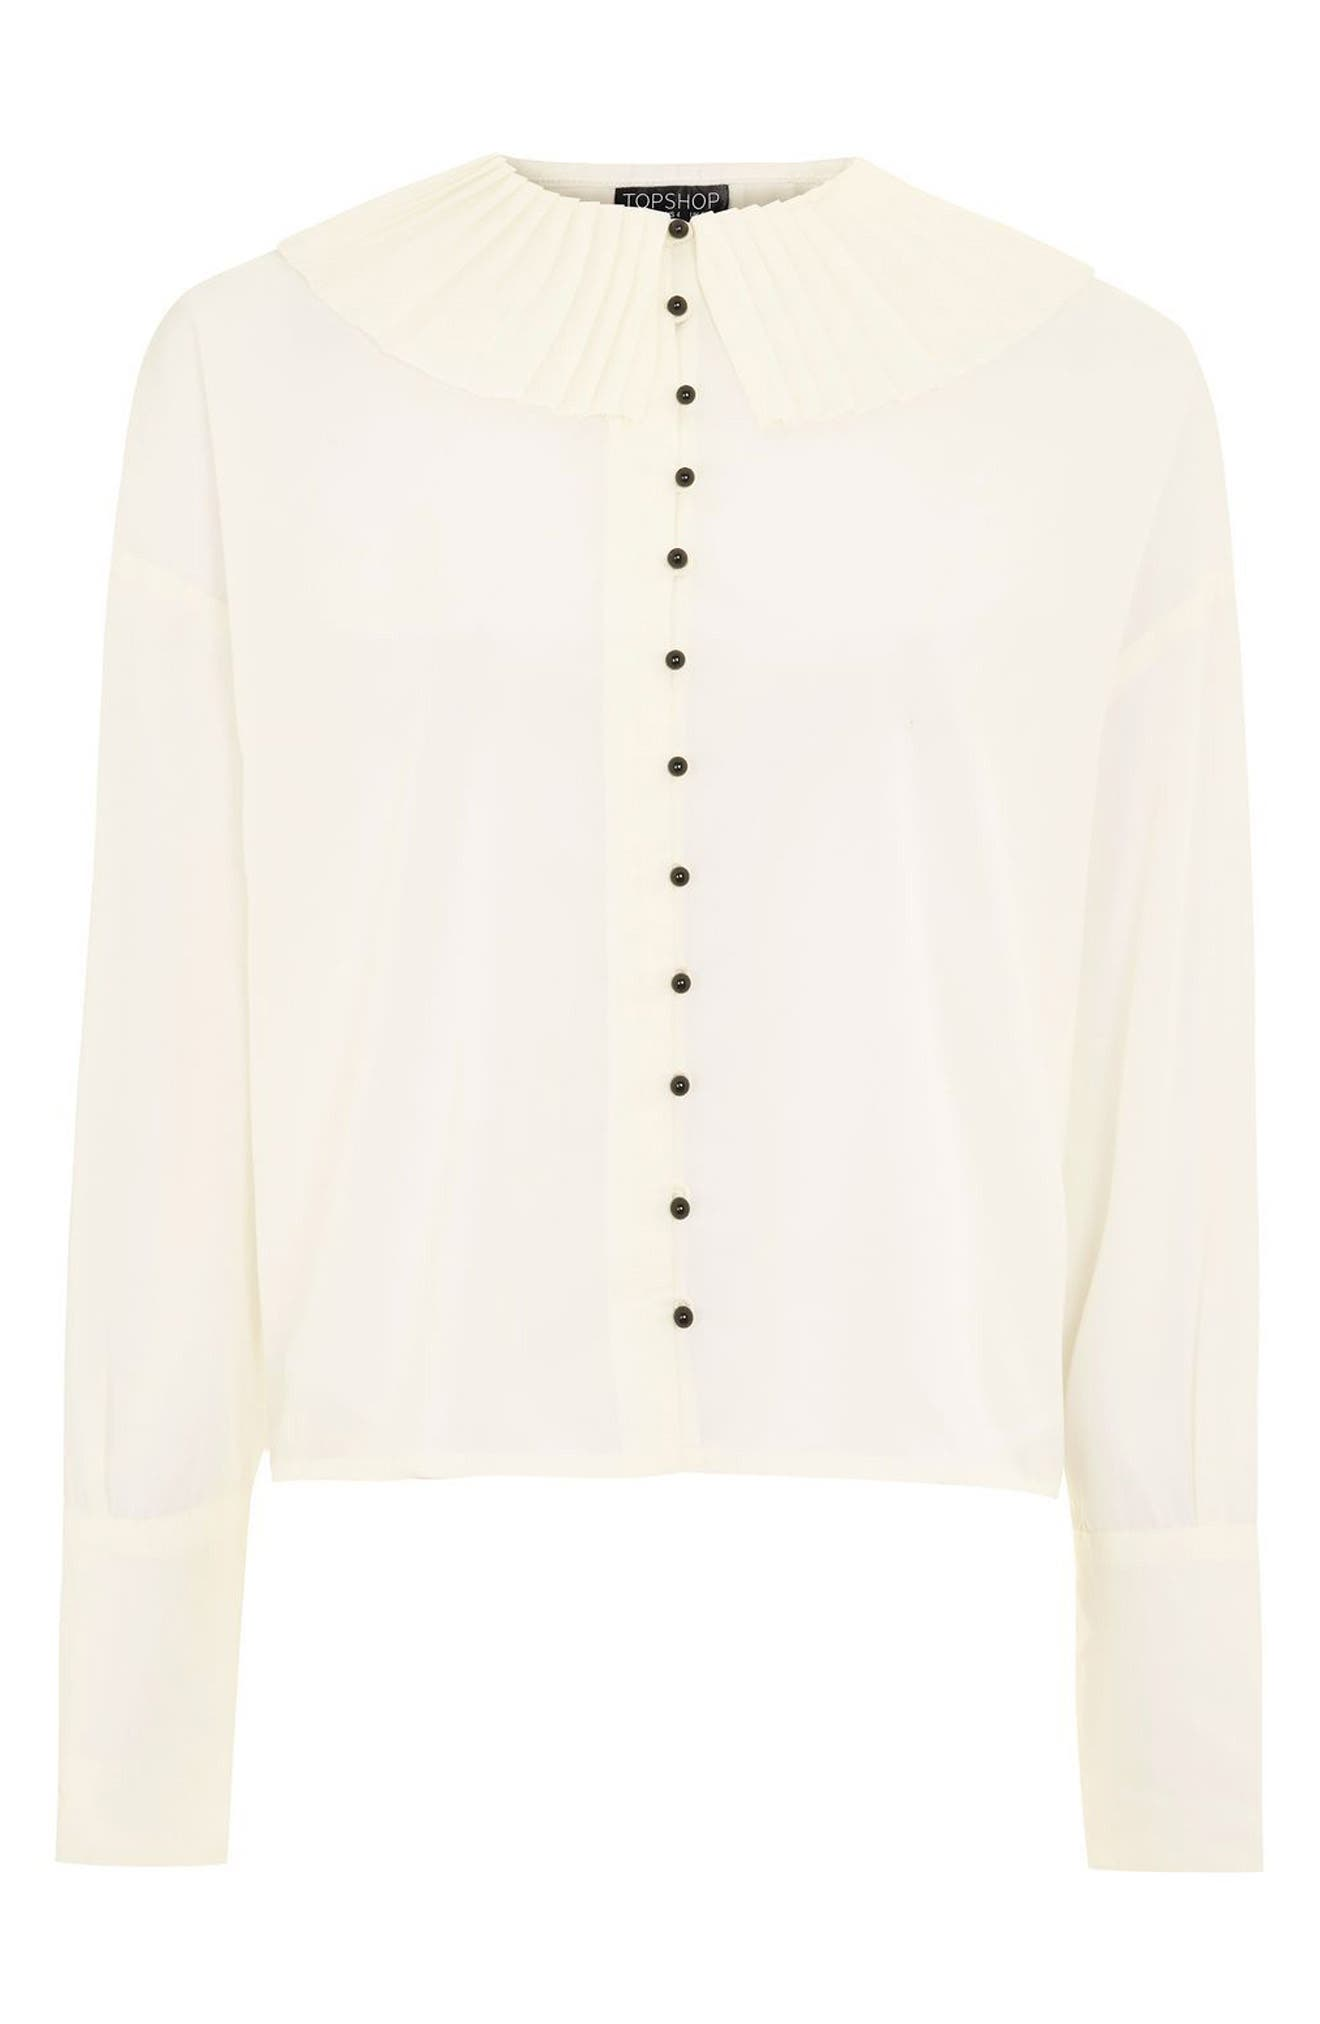 Pleated Collar Shirt,                             Alternate thumbnail 5, color,                             Ivory